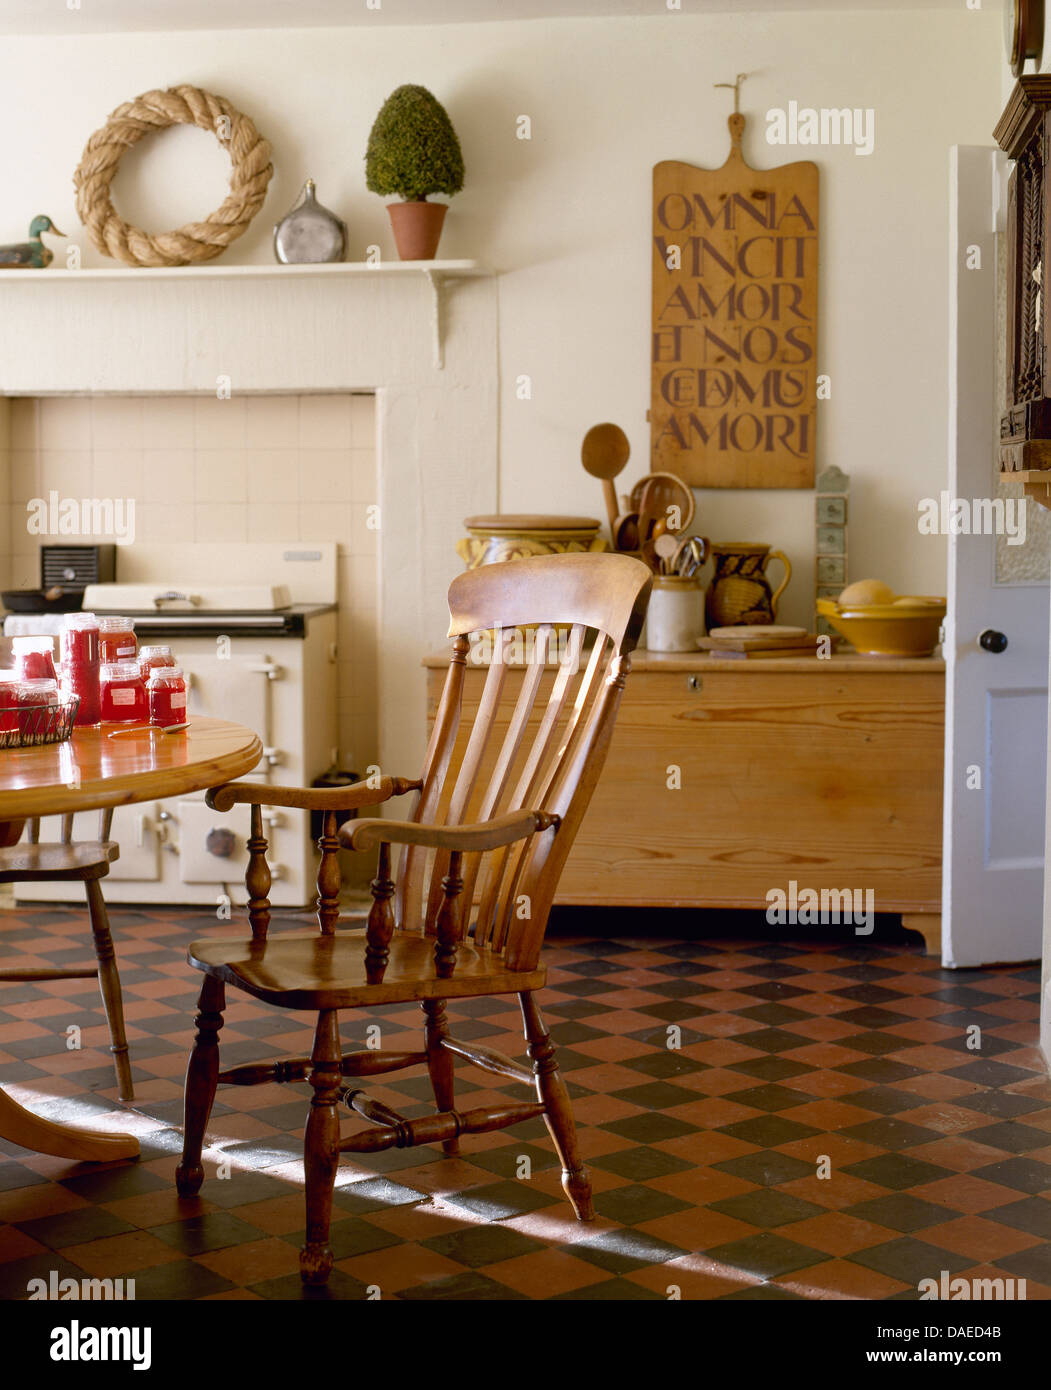 antique windsor chair in country kitchen with original black+red